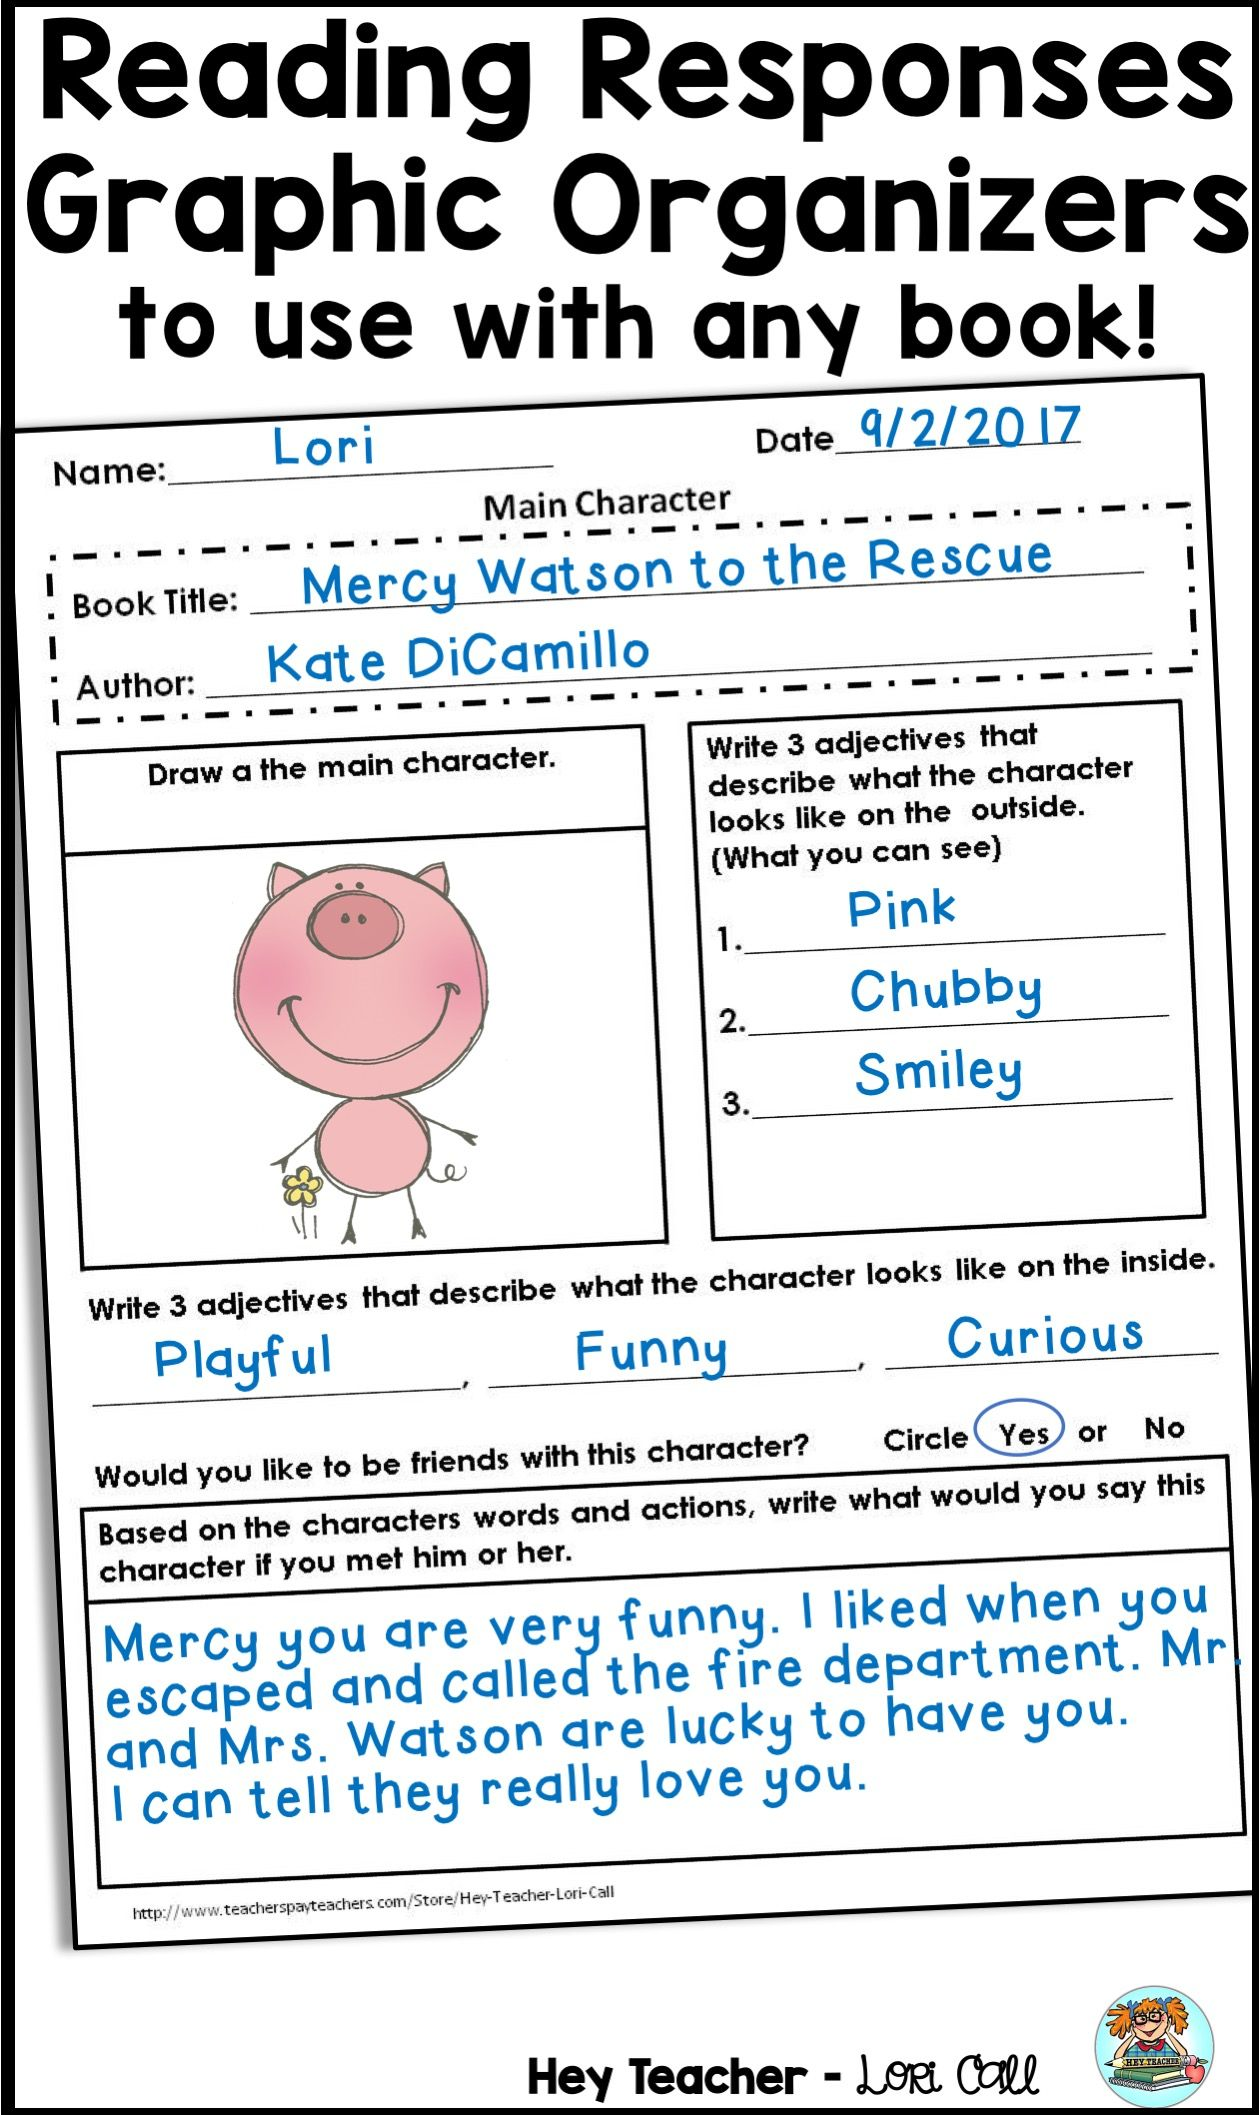 worksheet Reading Response Worksheets reading responses and graphic organizers for any book across the logs responses